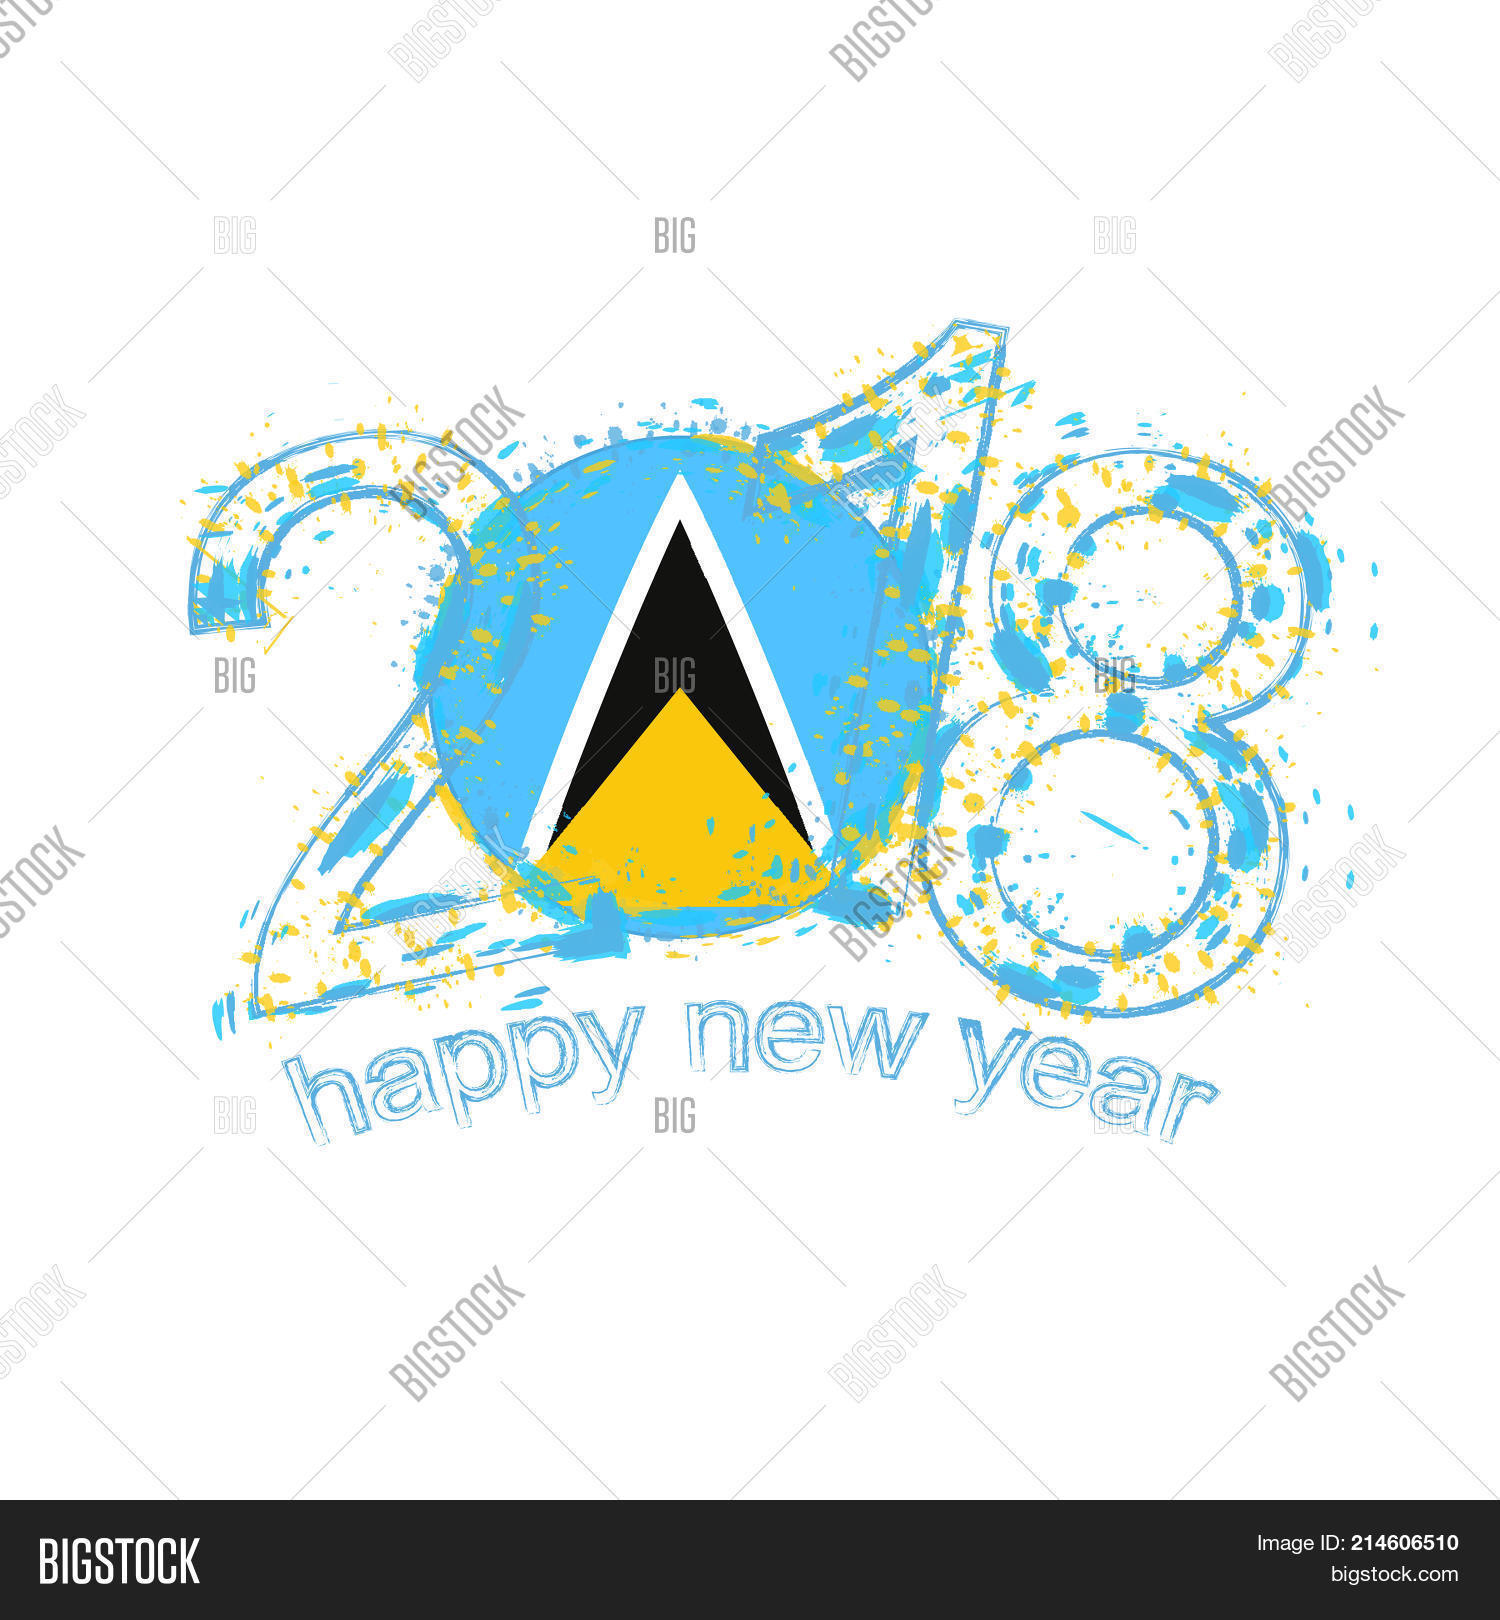 2018 happy new year saint lucia grunge vector template for greeting card and other